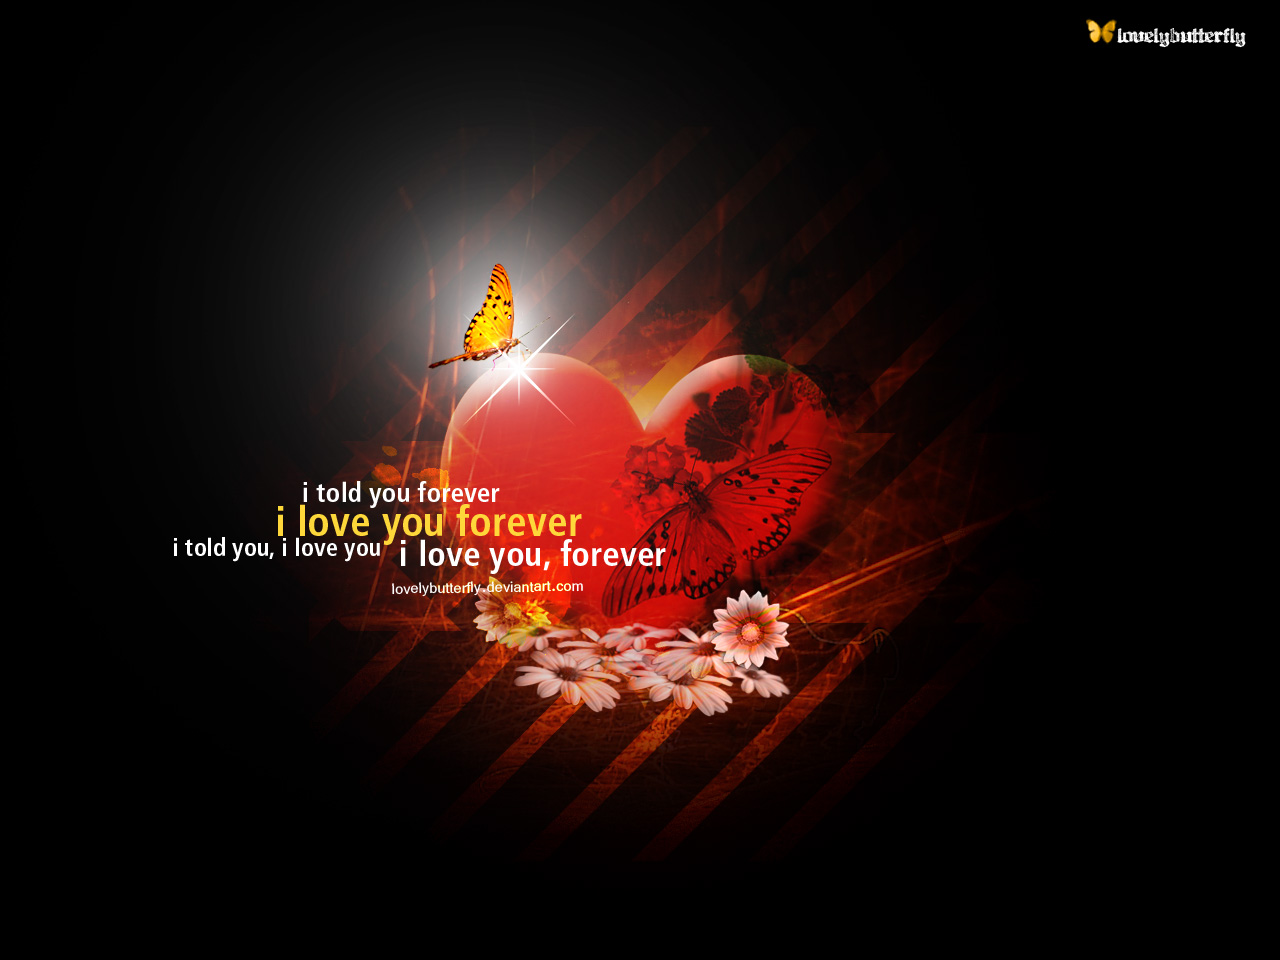 Wallpaper Love U Forever : 1280x960 I love you forever desktop Pc and Mac wallpaper